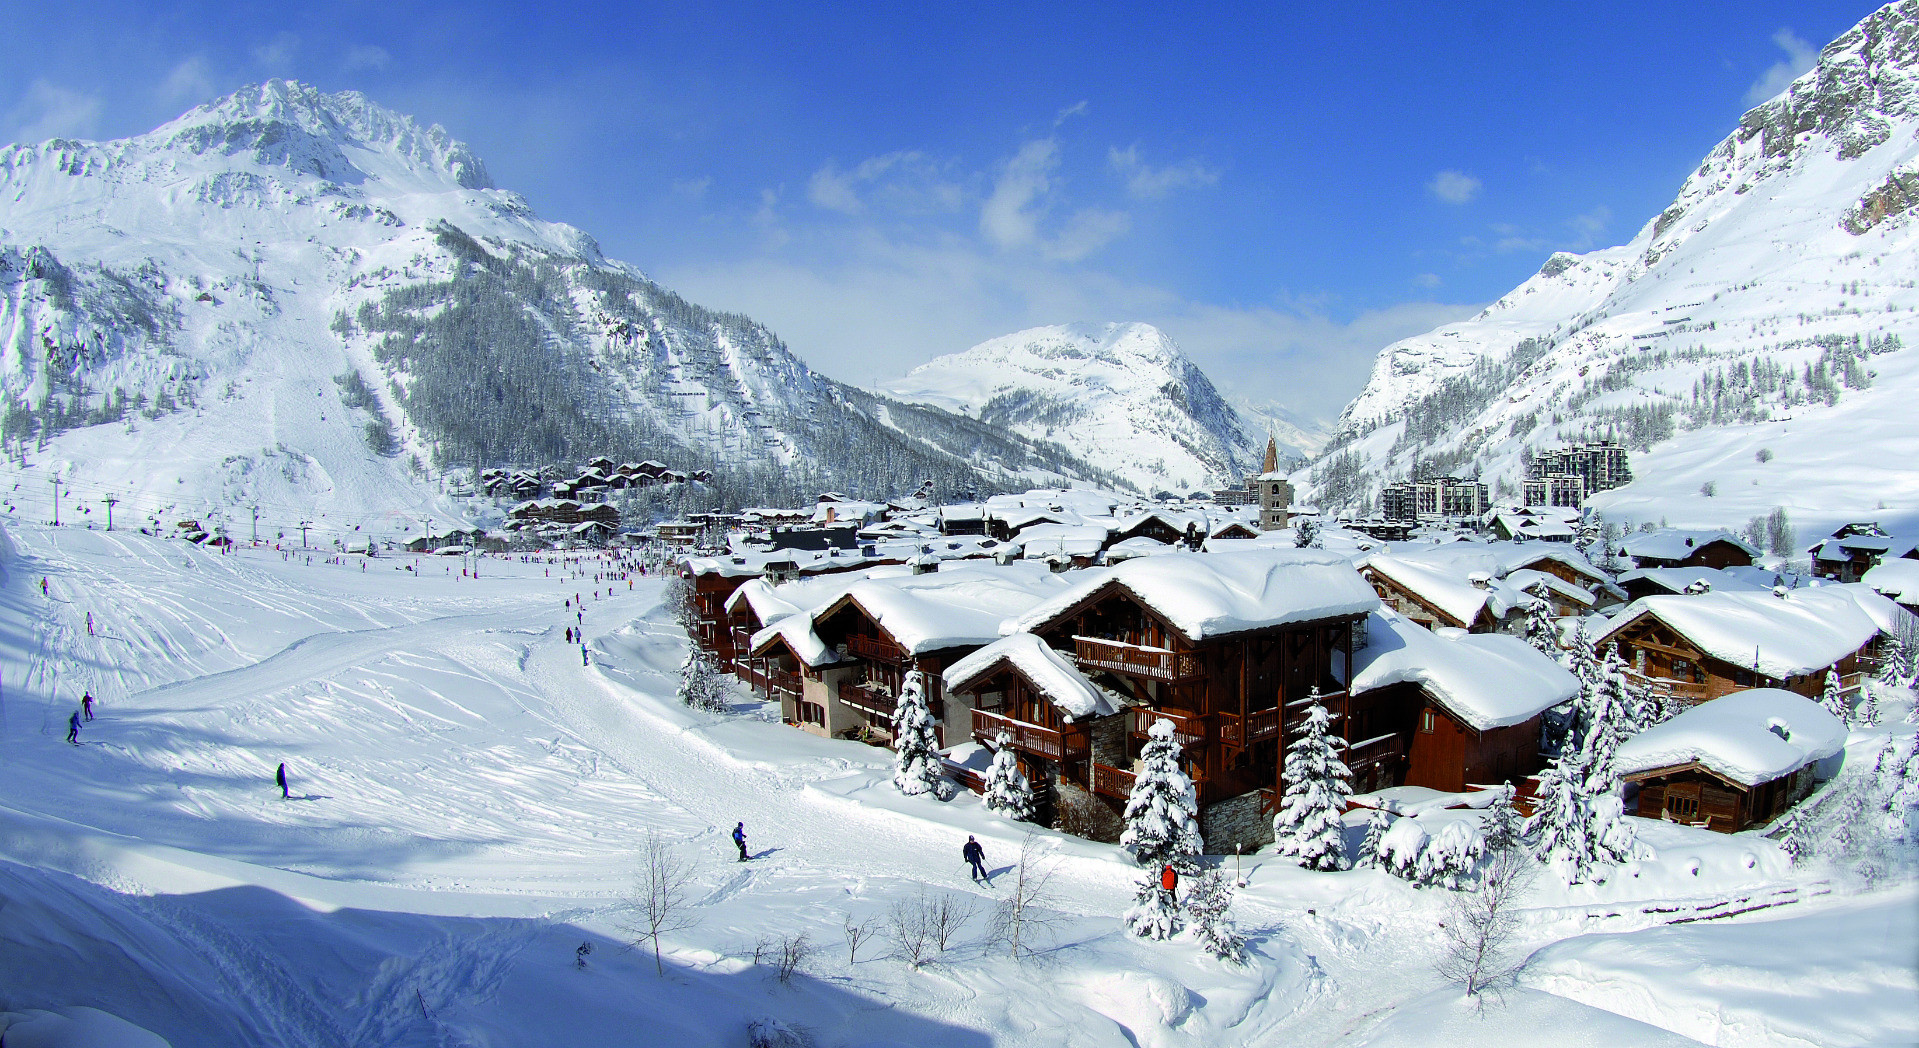 Family-friendly Val d`Isère has an excellent snow recordundefined